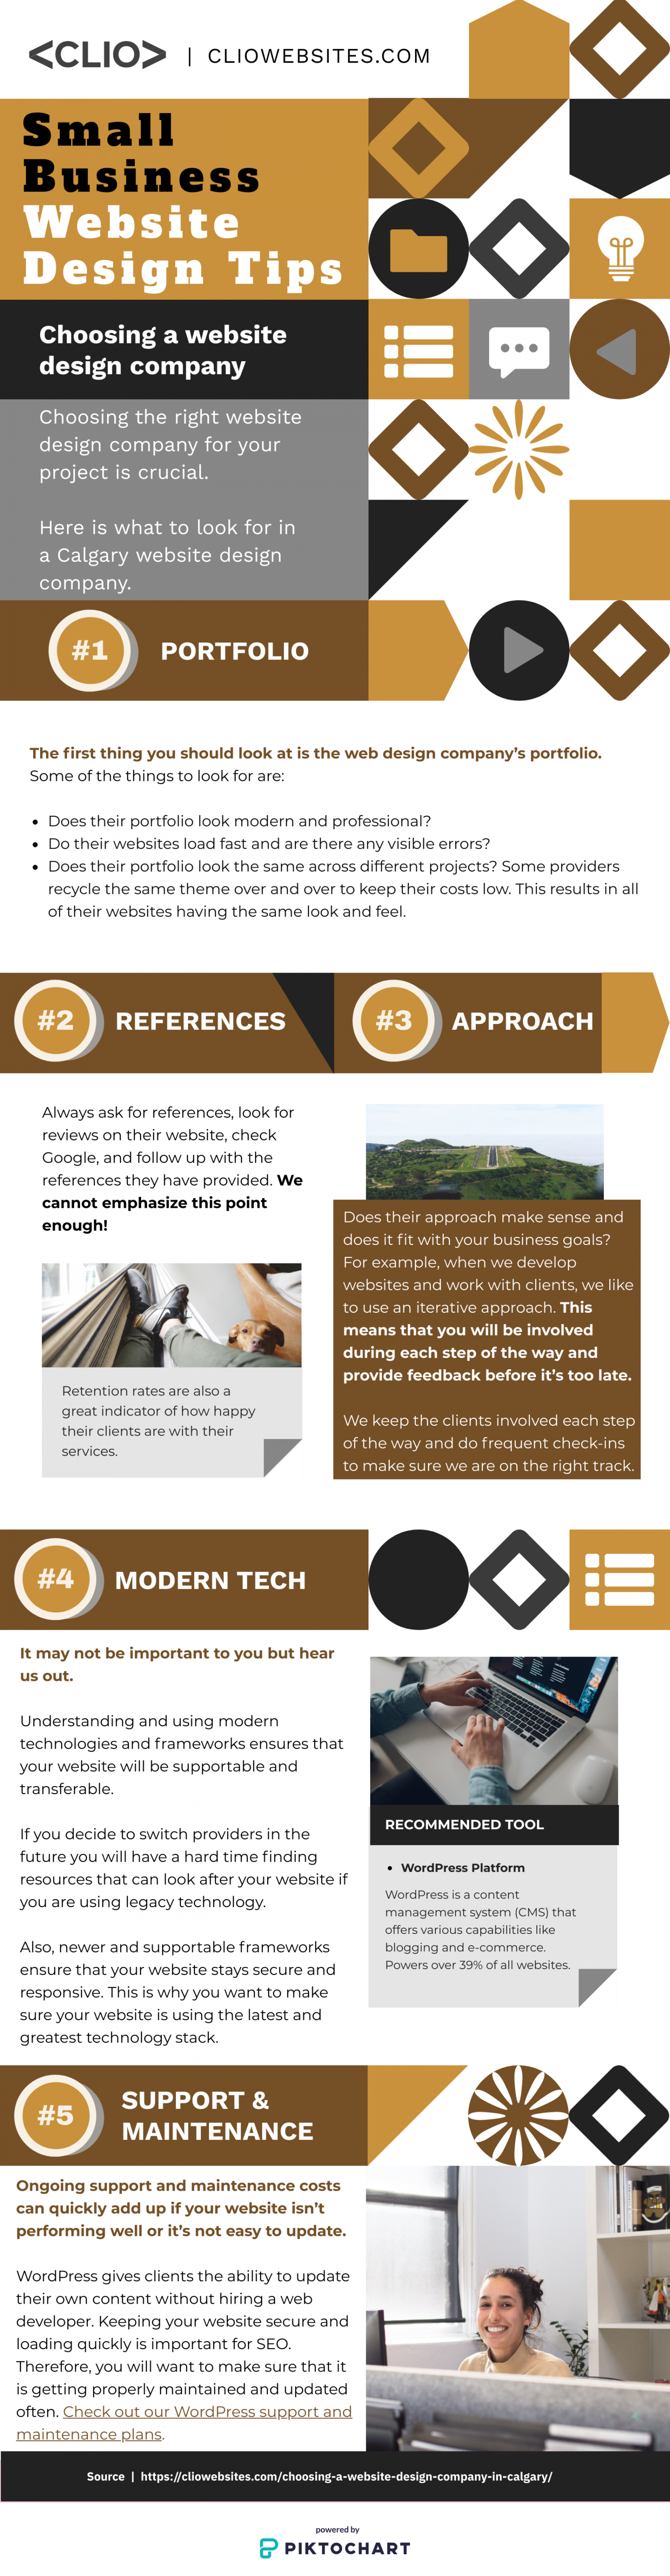 Choosing a website design company in Calgary Infographic